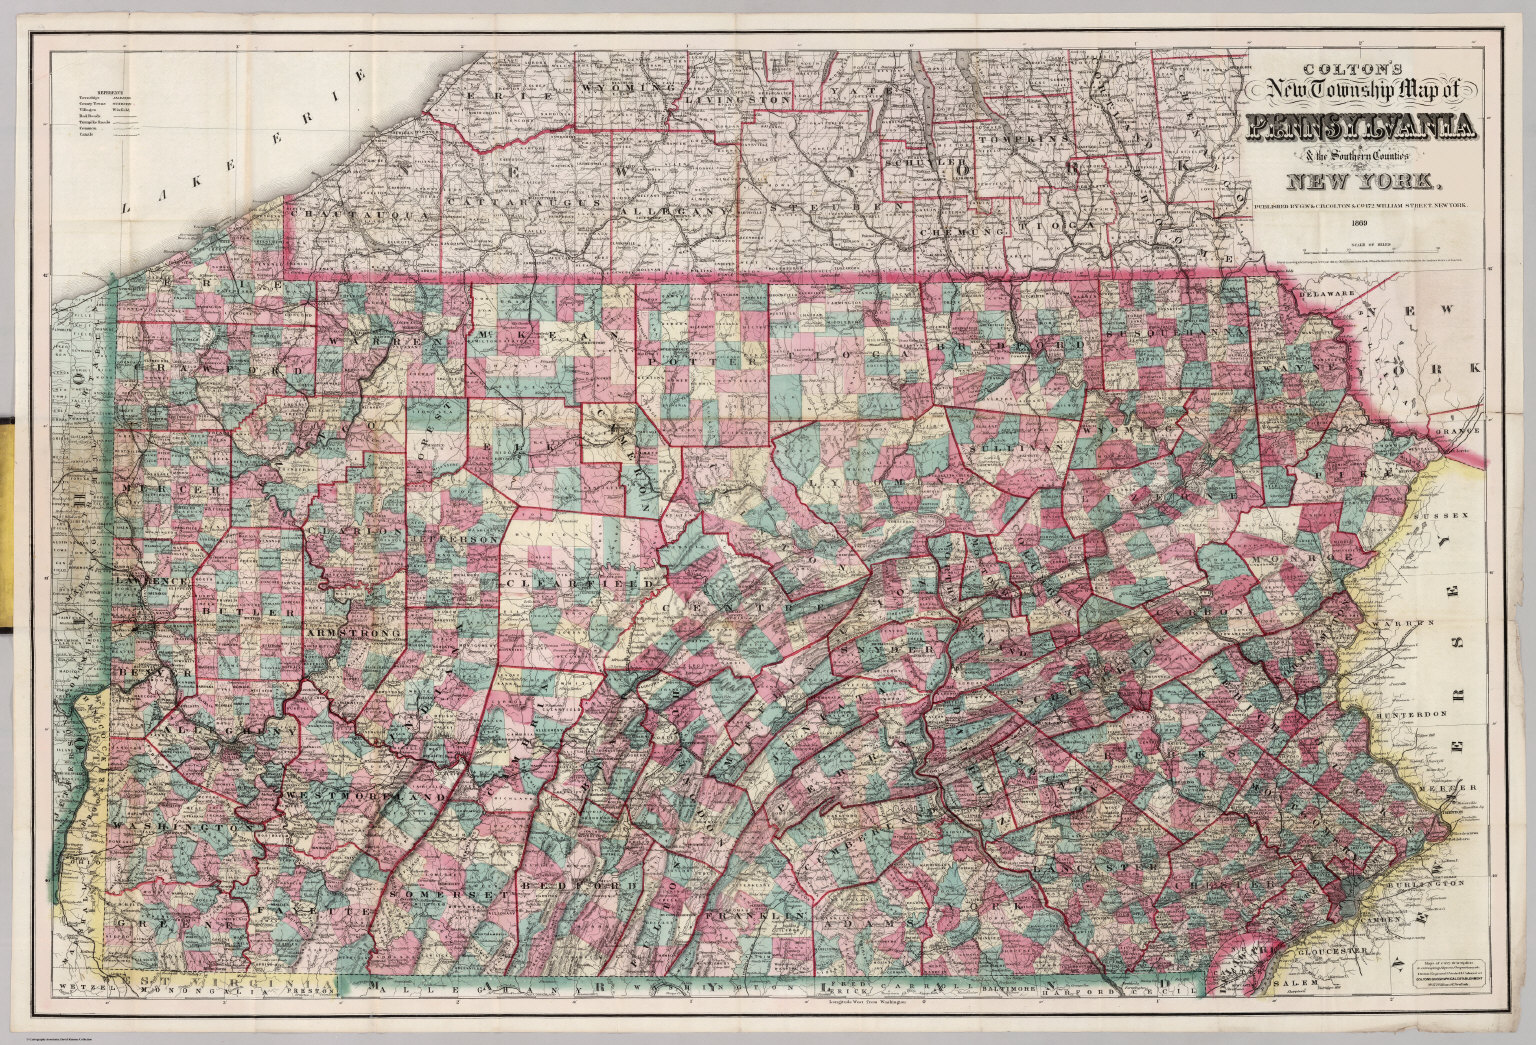 Counties New York Map.Pennsylvania The Southern Counties Of New York David Rumsey